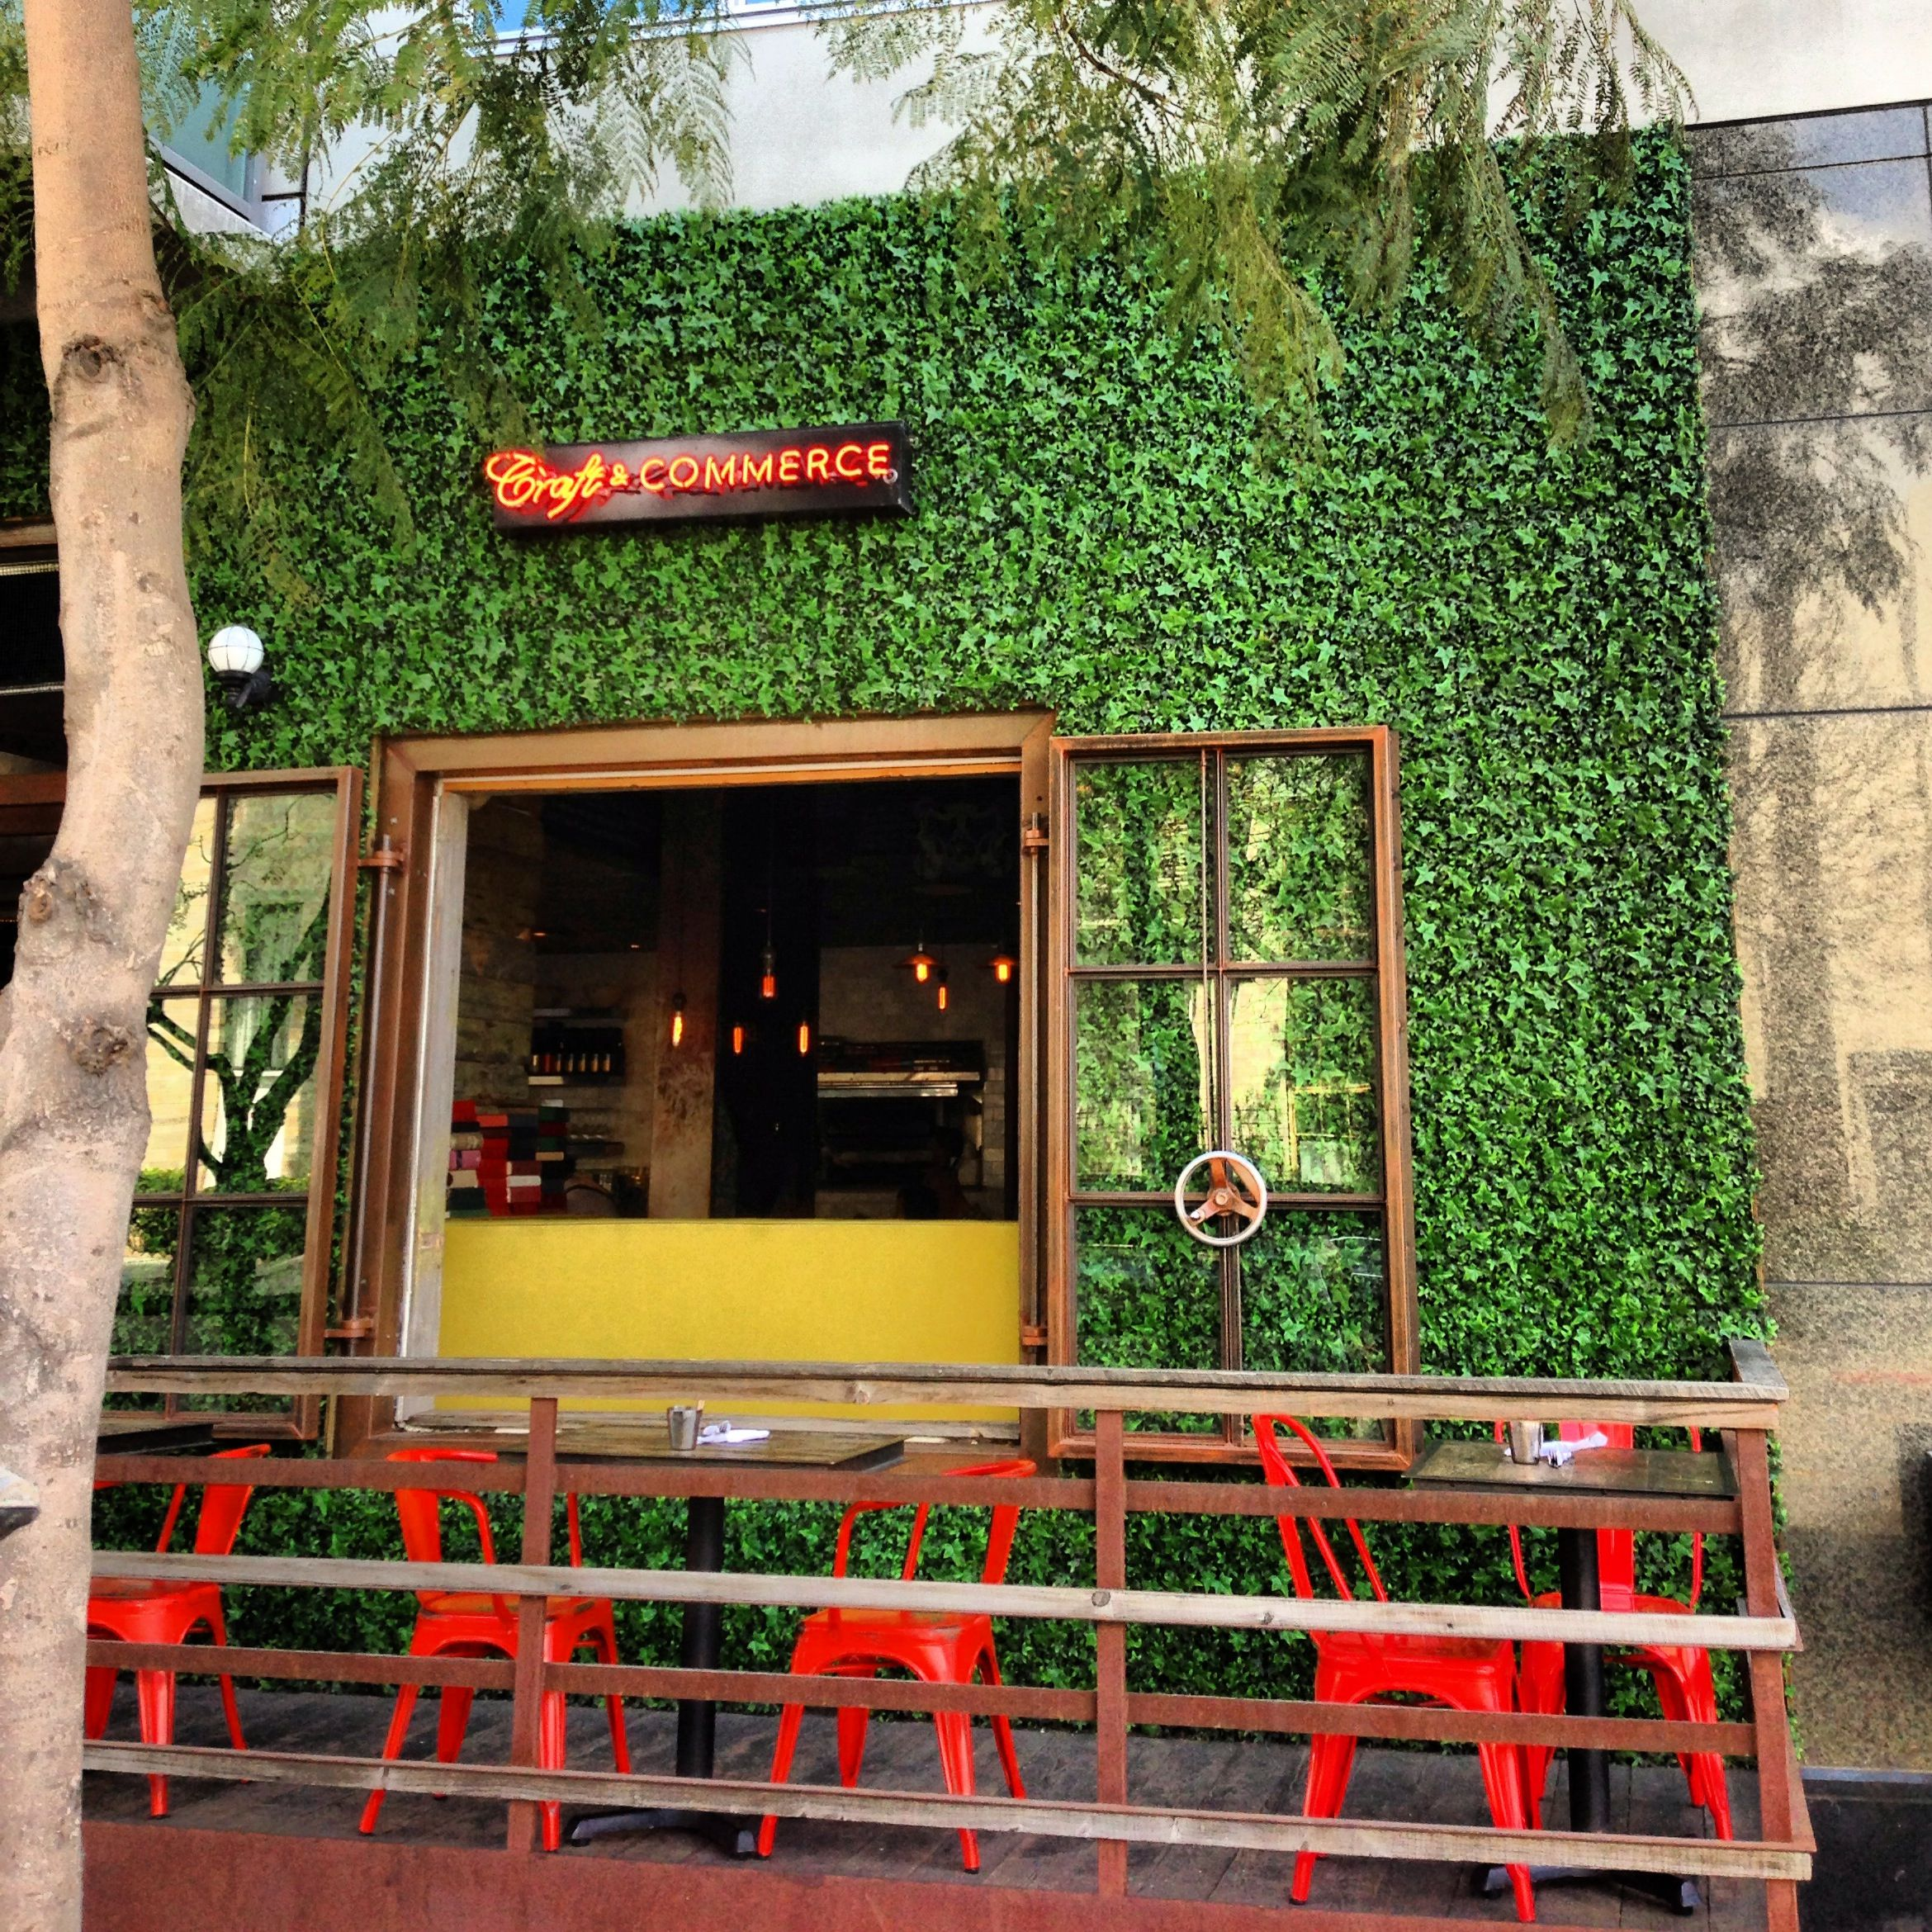 Green Cafe Design: Looking For A Hipster Styled Restaurant With Creative Food